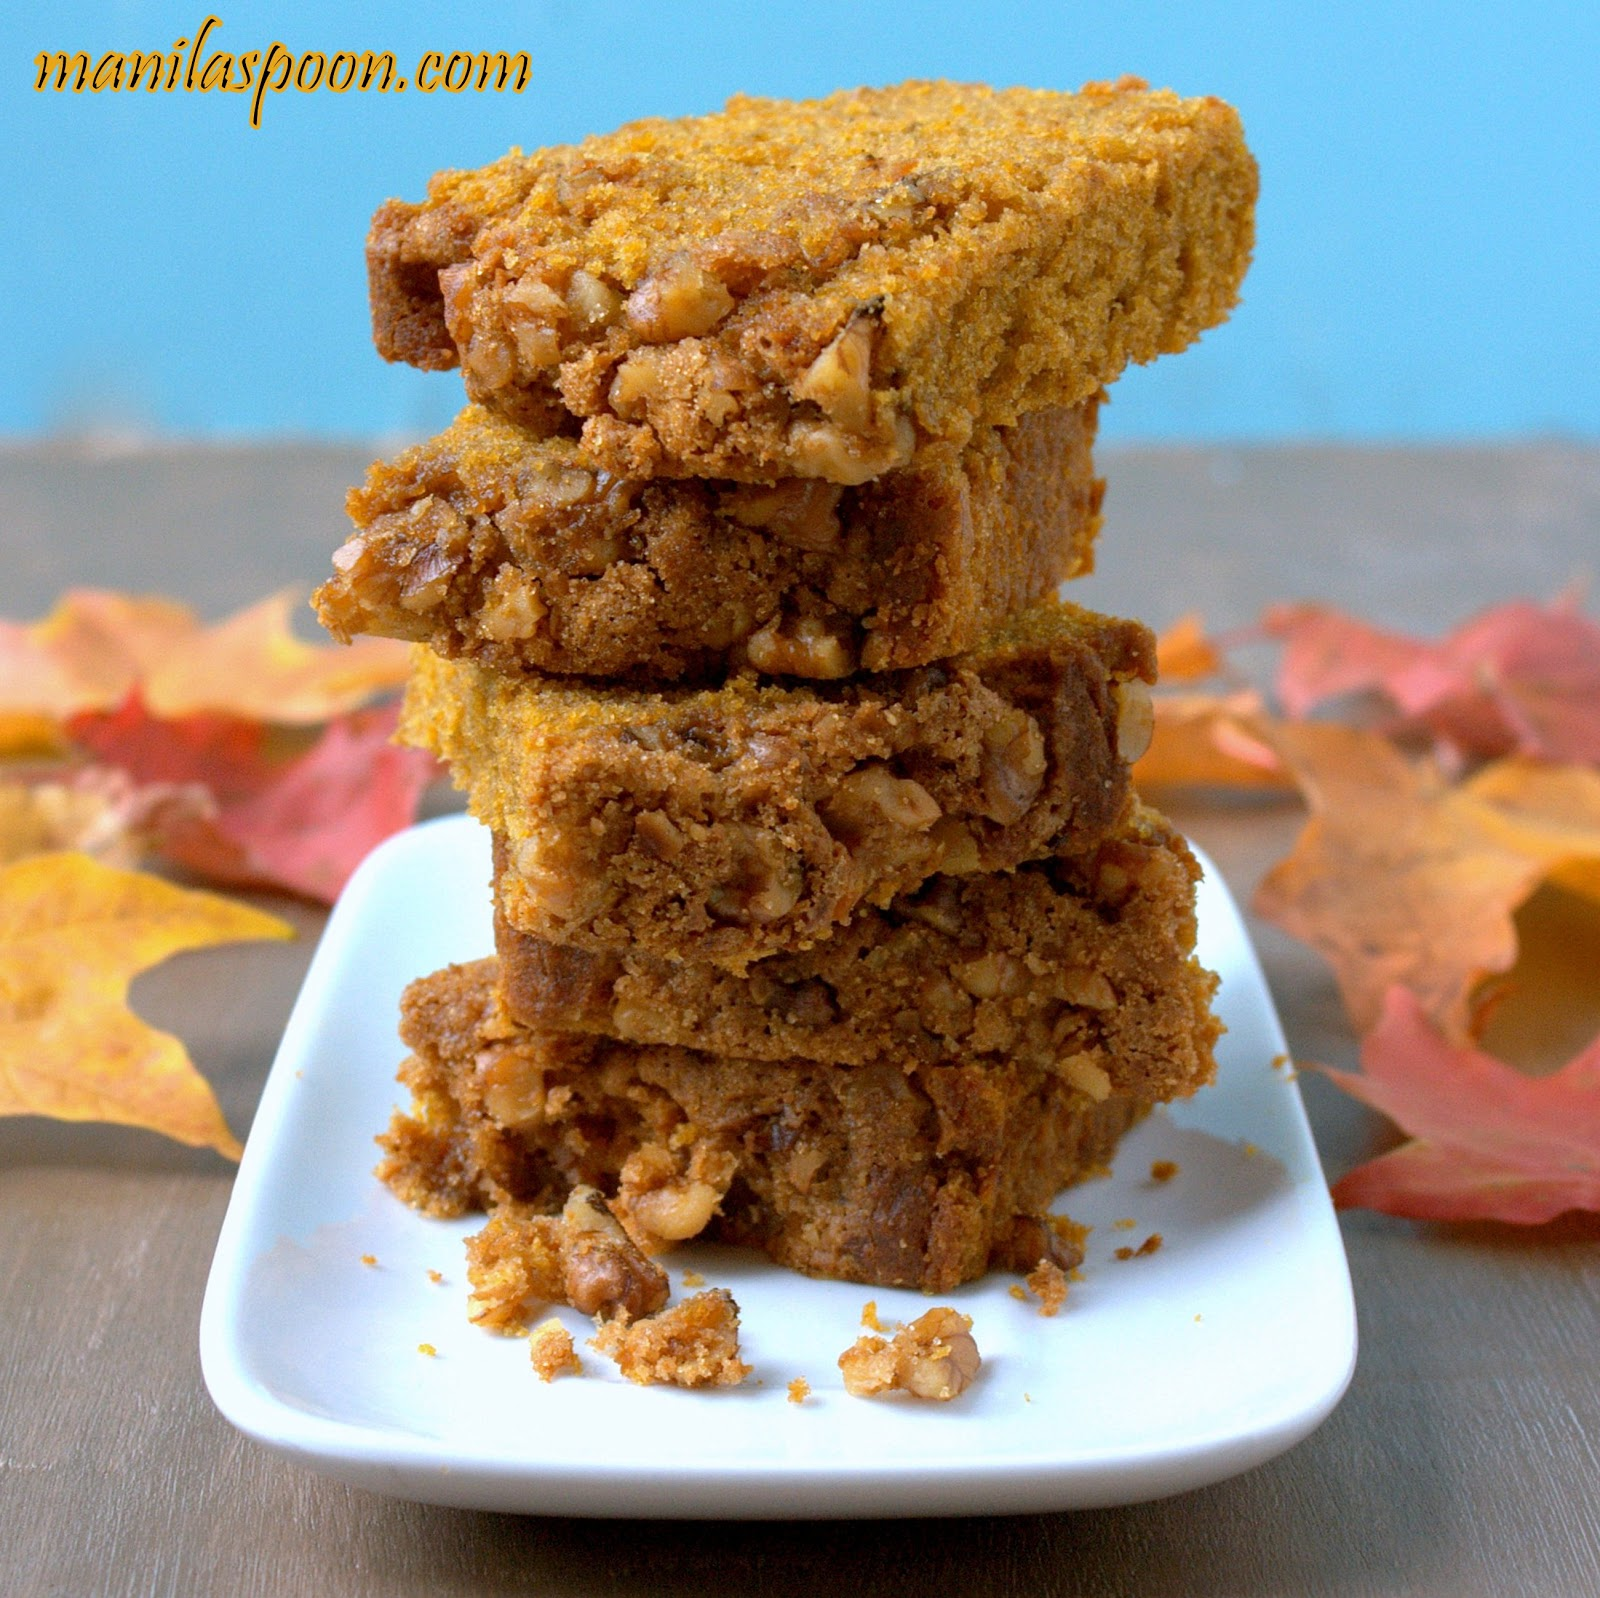 ... praline topping is totally amazing! Fall-perfect - Pumpkin Praline